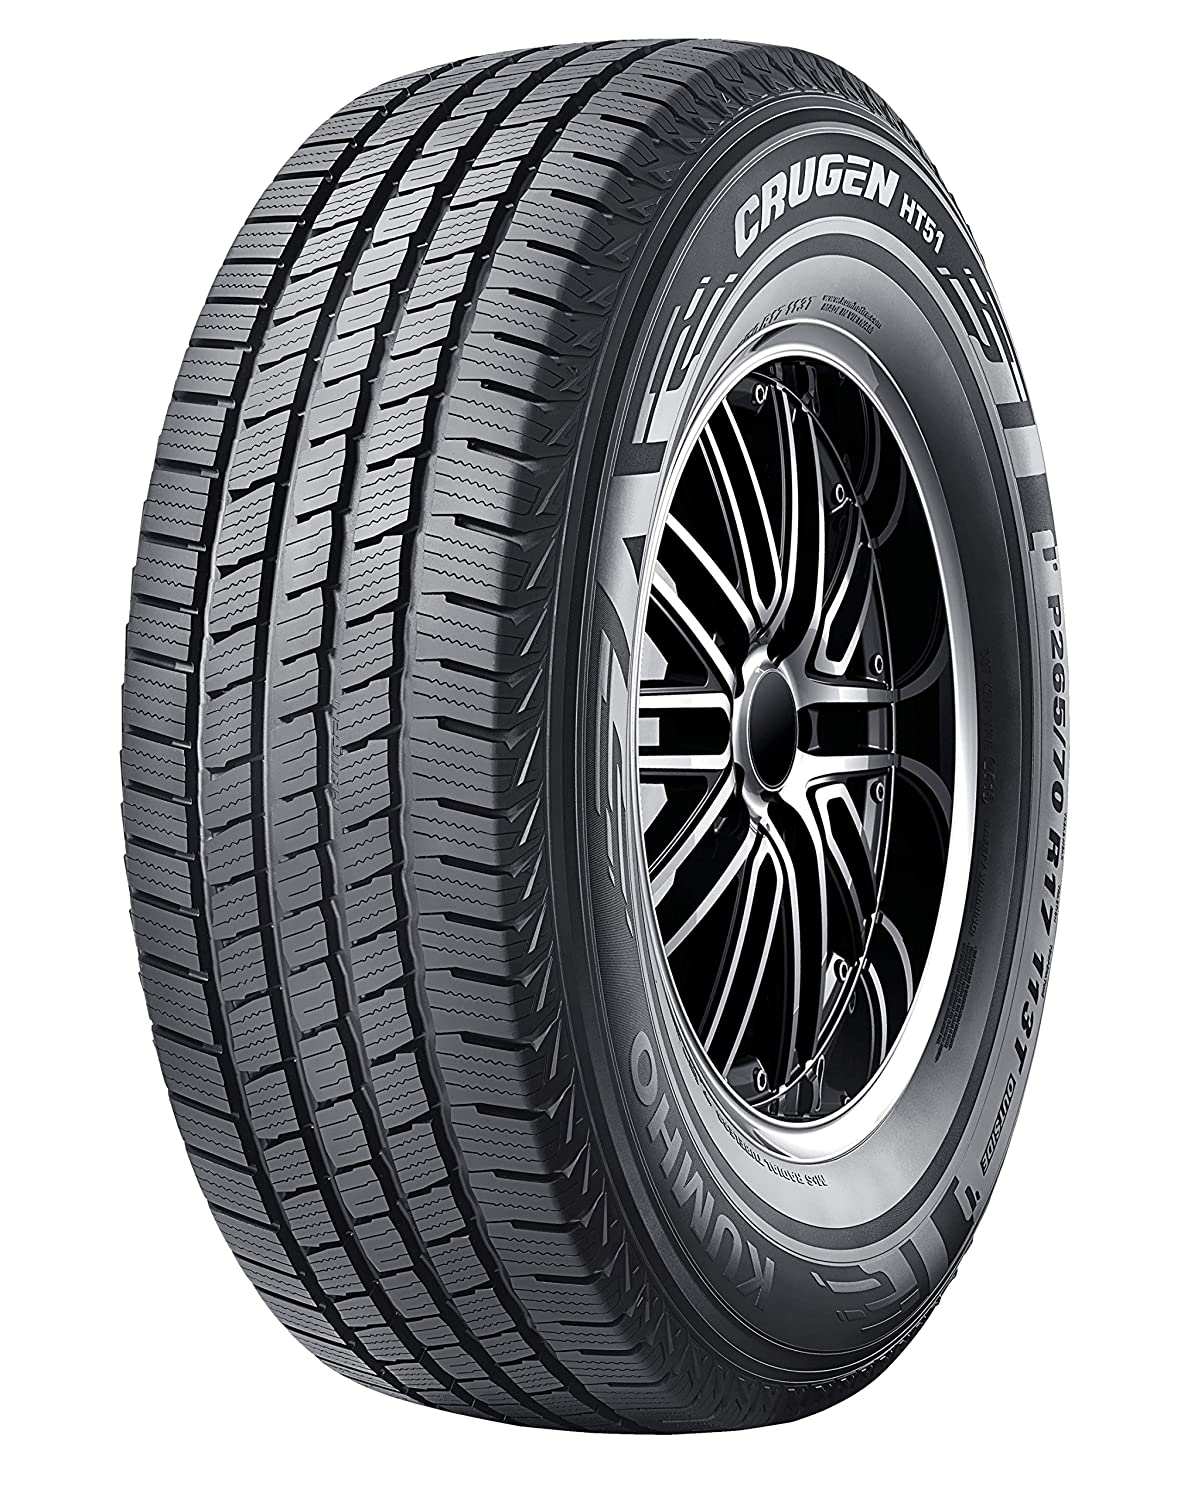 Season Radial Tire-225//65R17 102T Kumho Crugen HT51 All